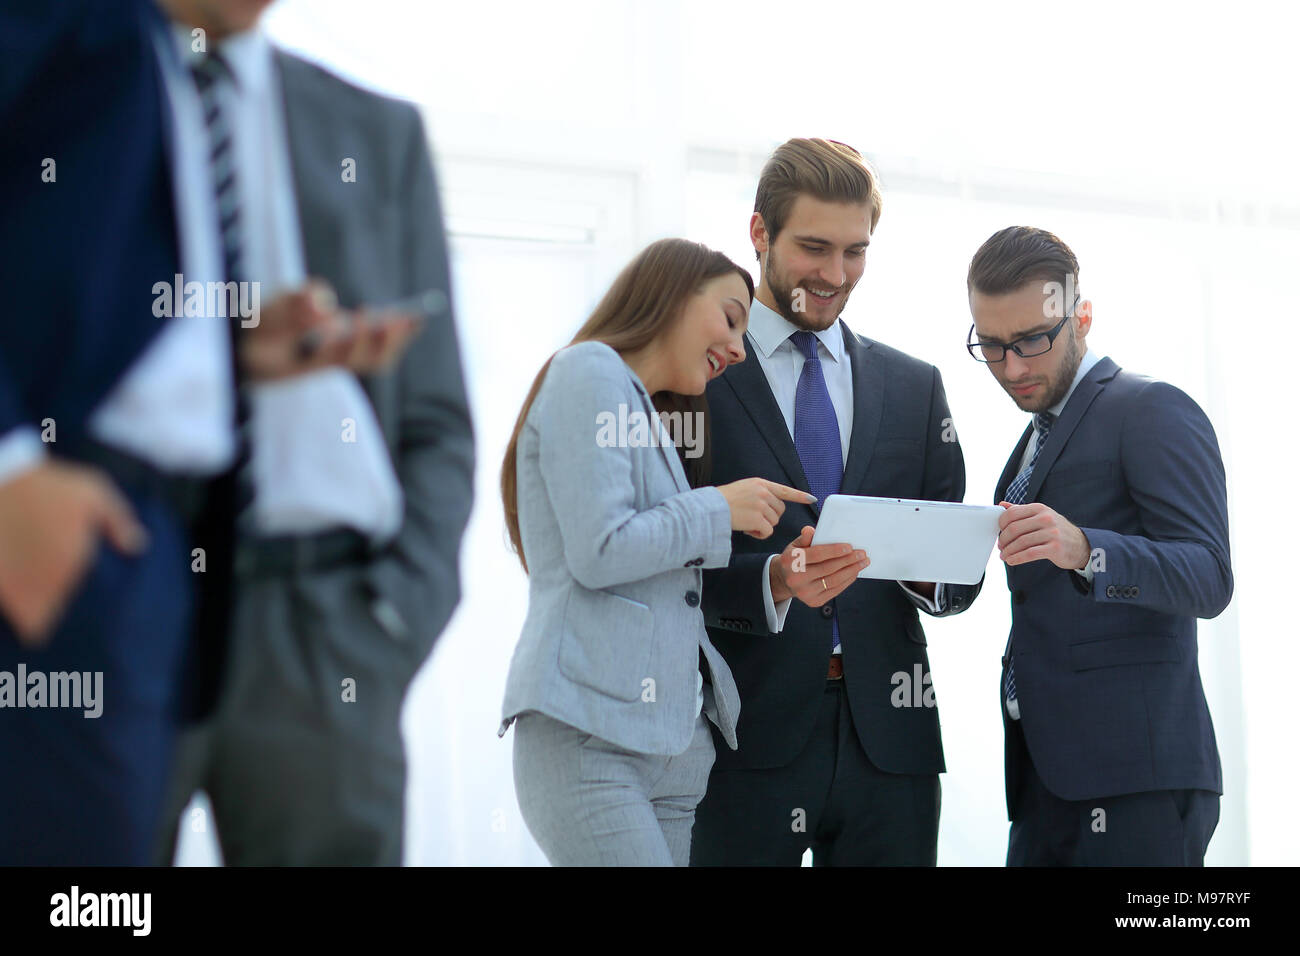 Business people are using gadgets and smiling while working - Stock Image